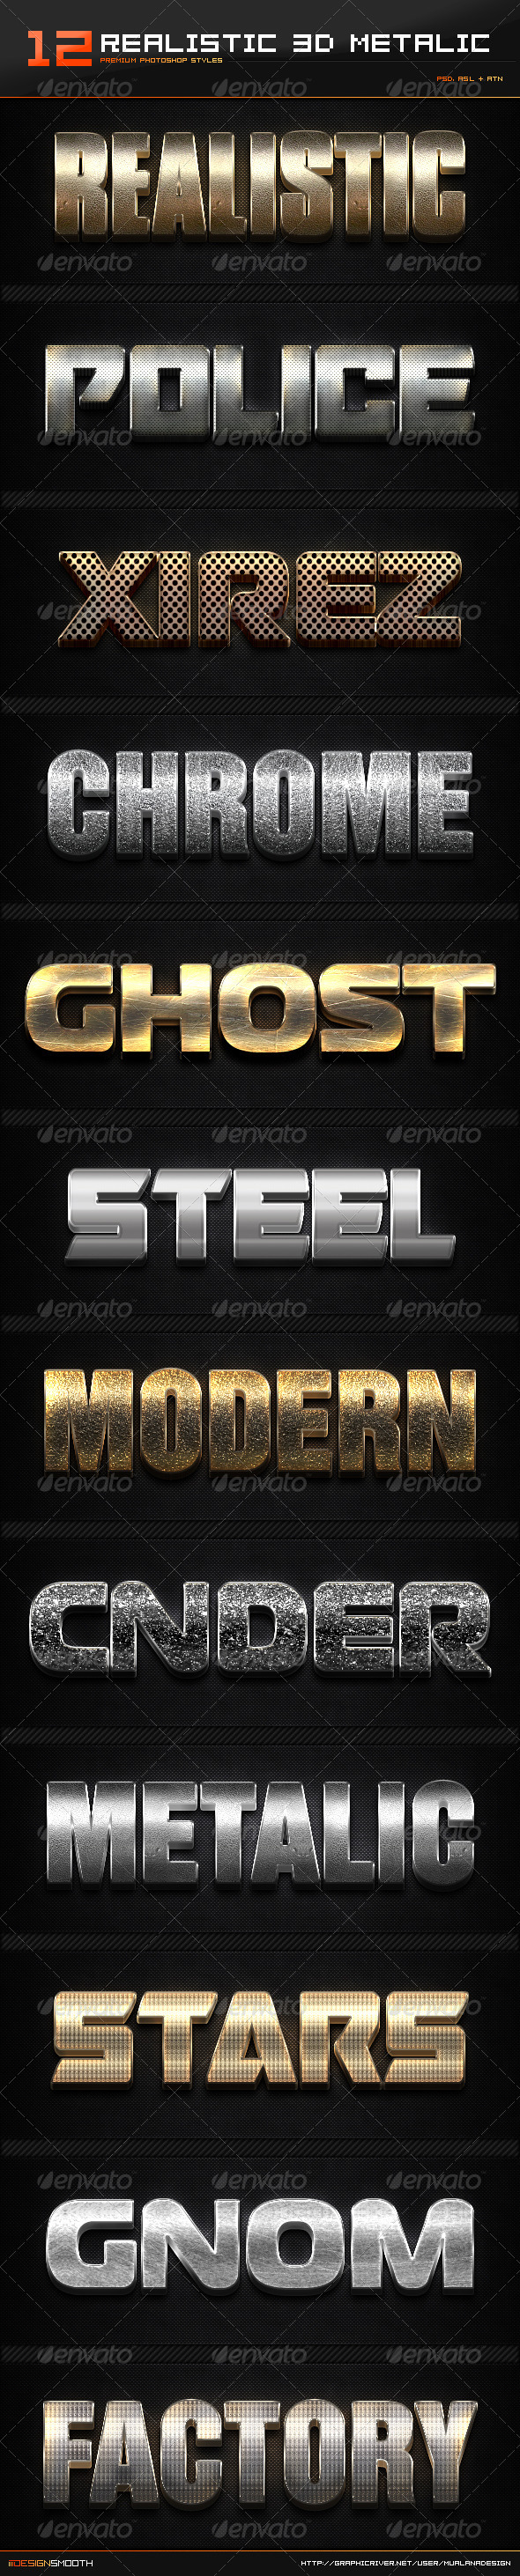 GraphicRiver 12 Realistic 3D Metallic Styles & Actions 8490841